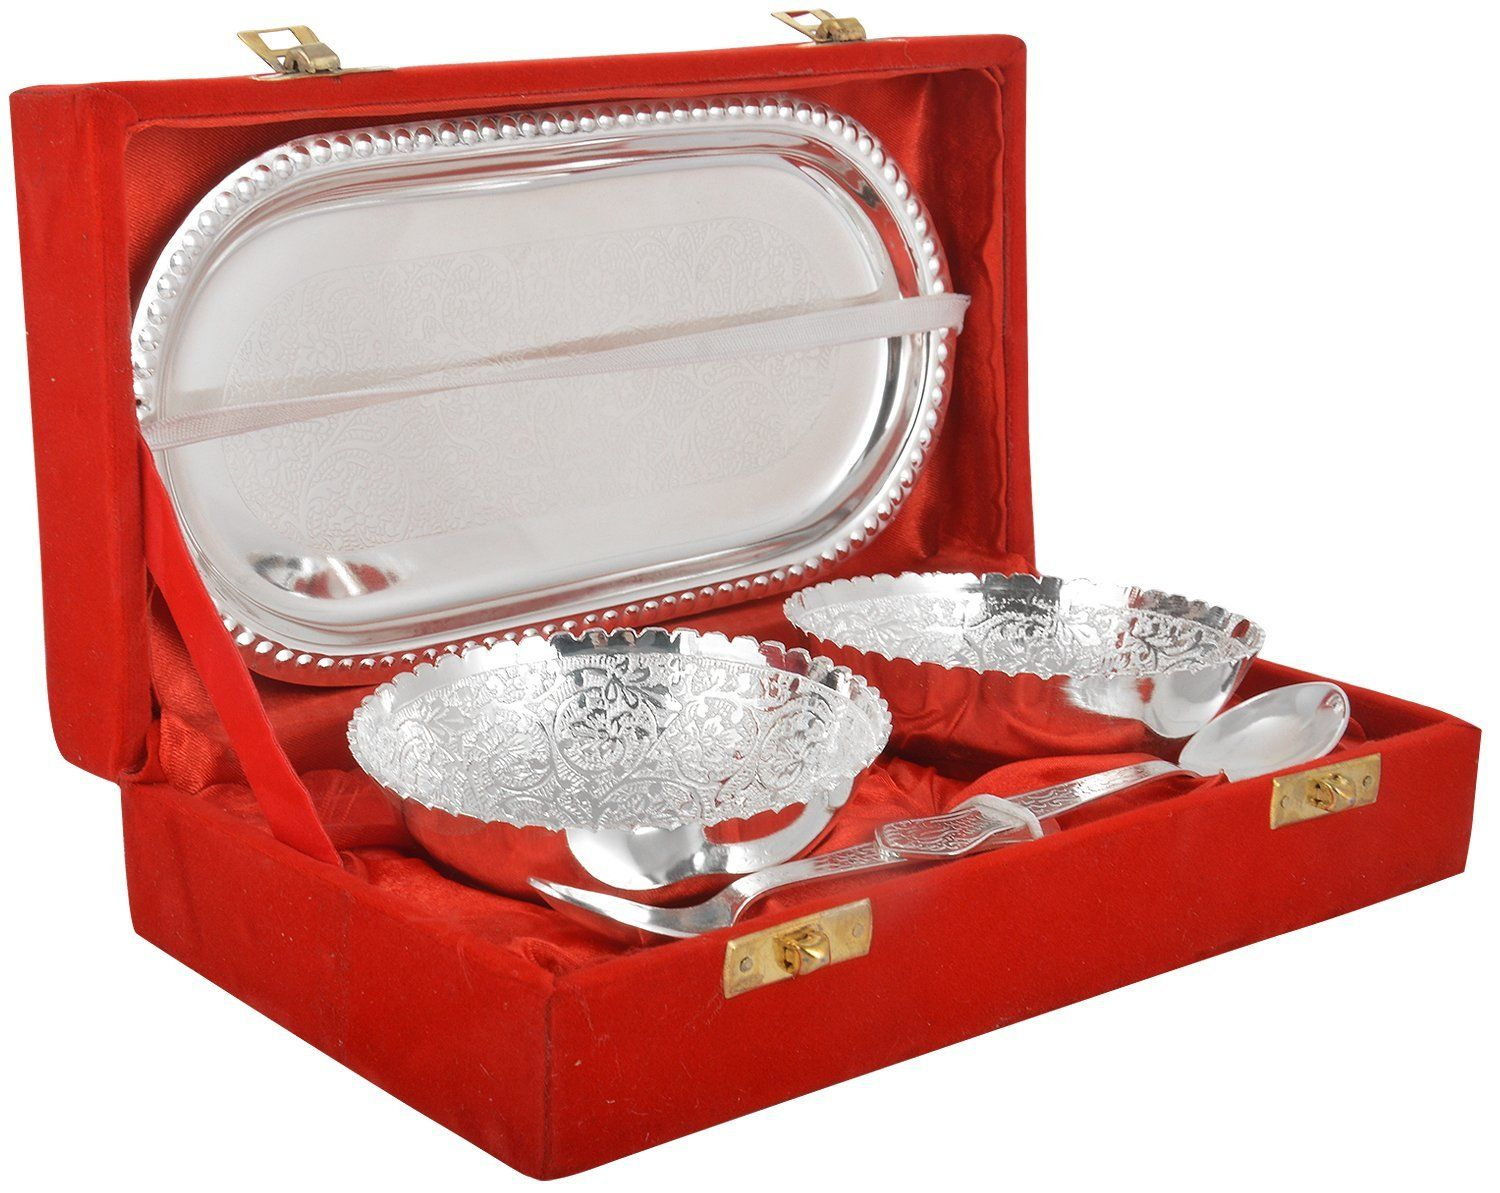 Pure Silver Gift Items For Marriage That Are Priced Below